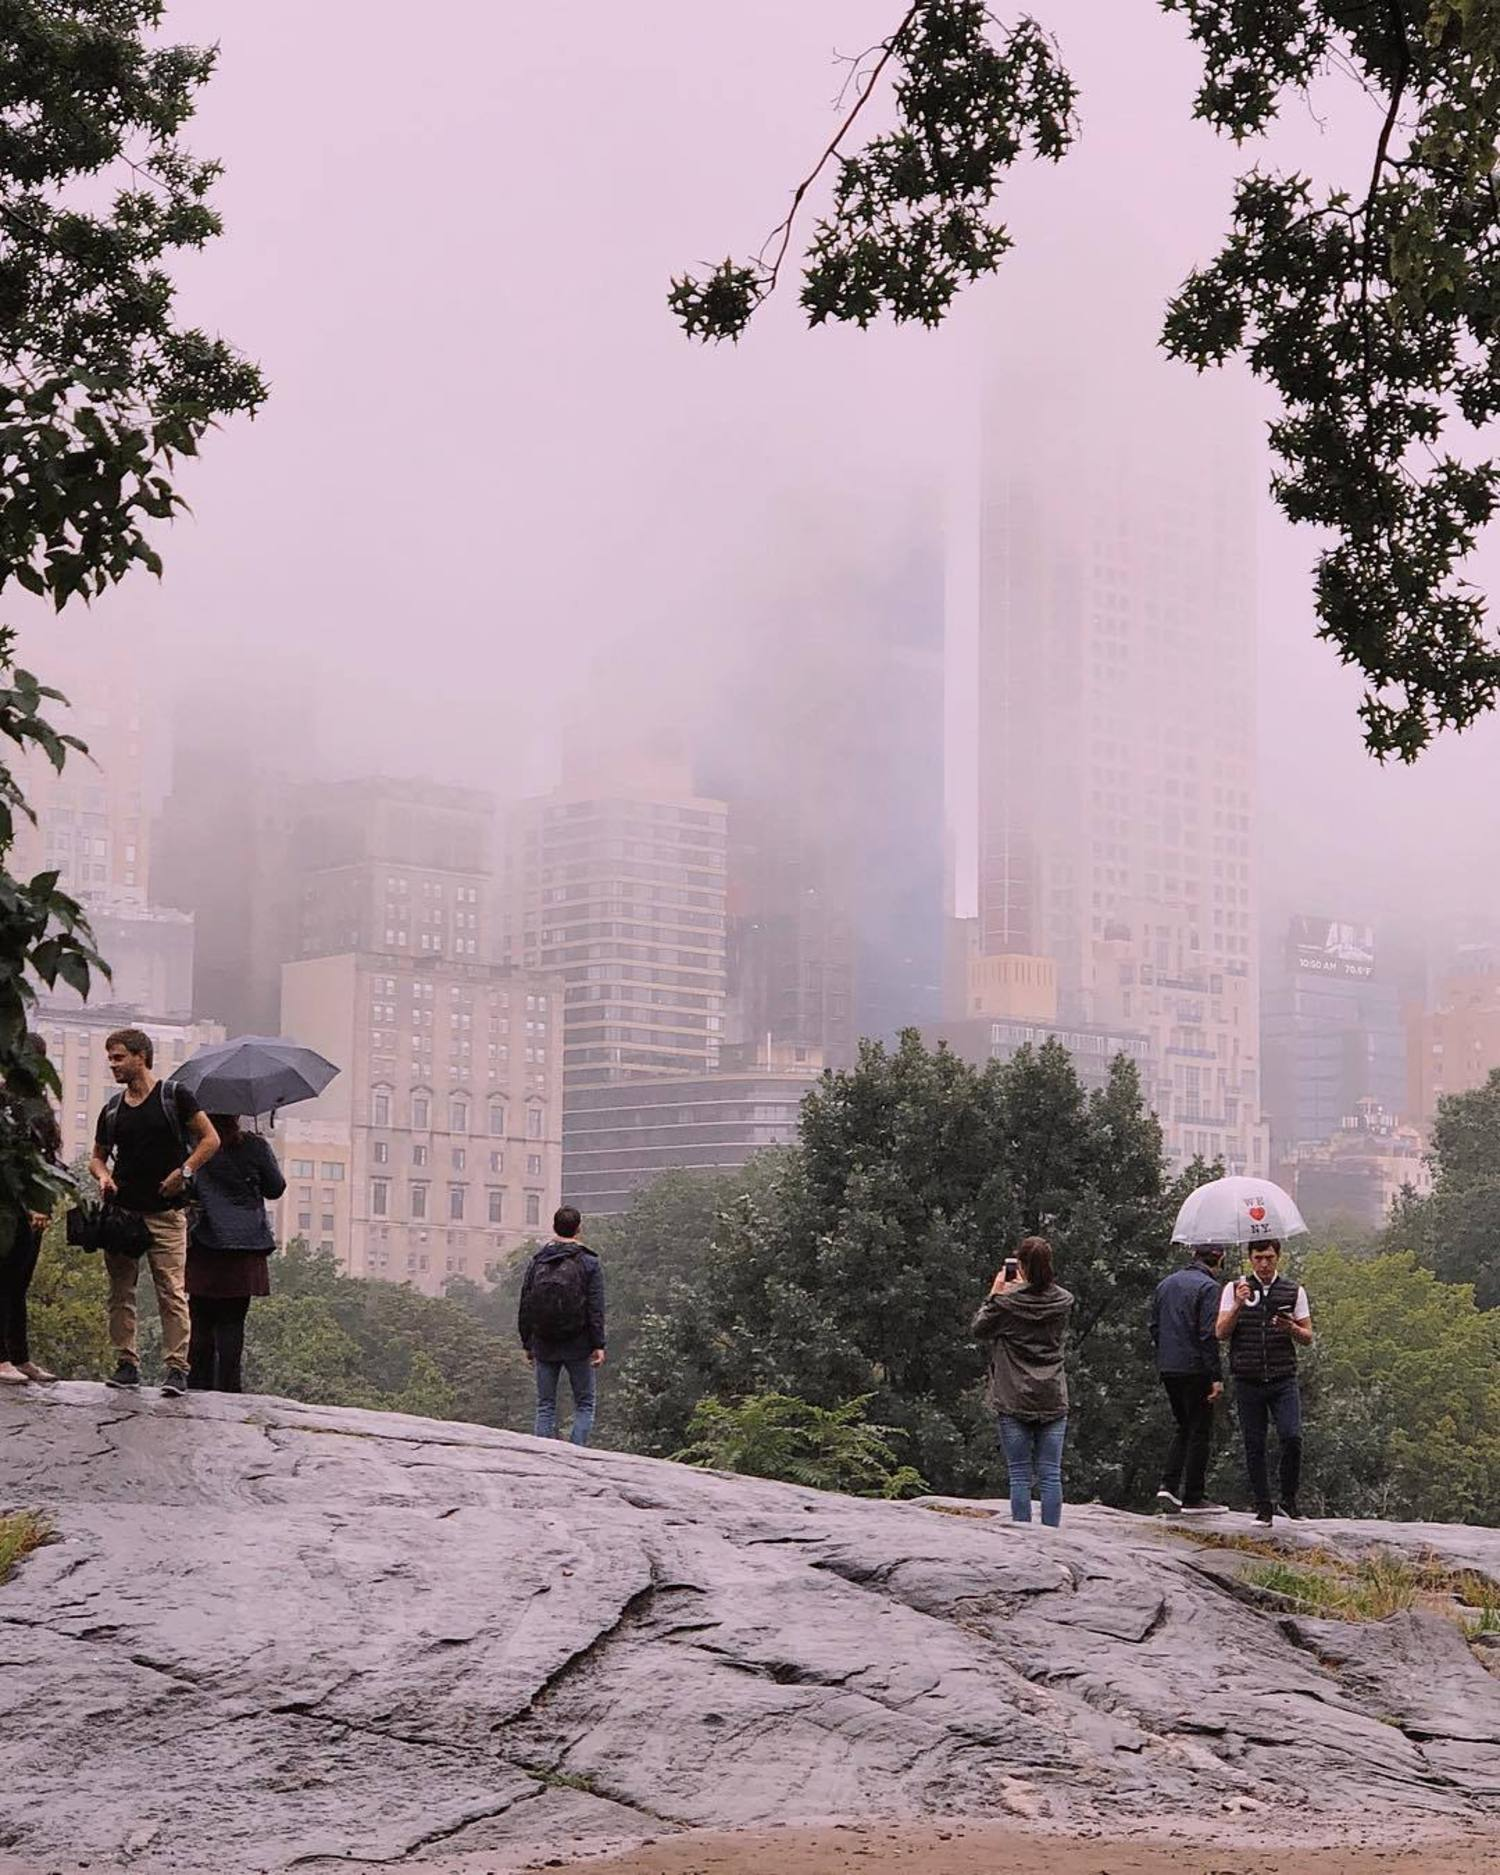 Misty cloudy morning in Central Park